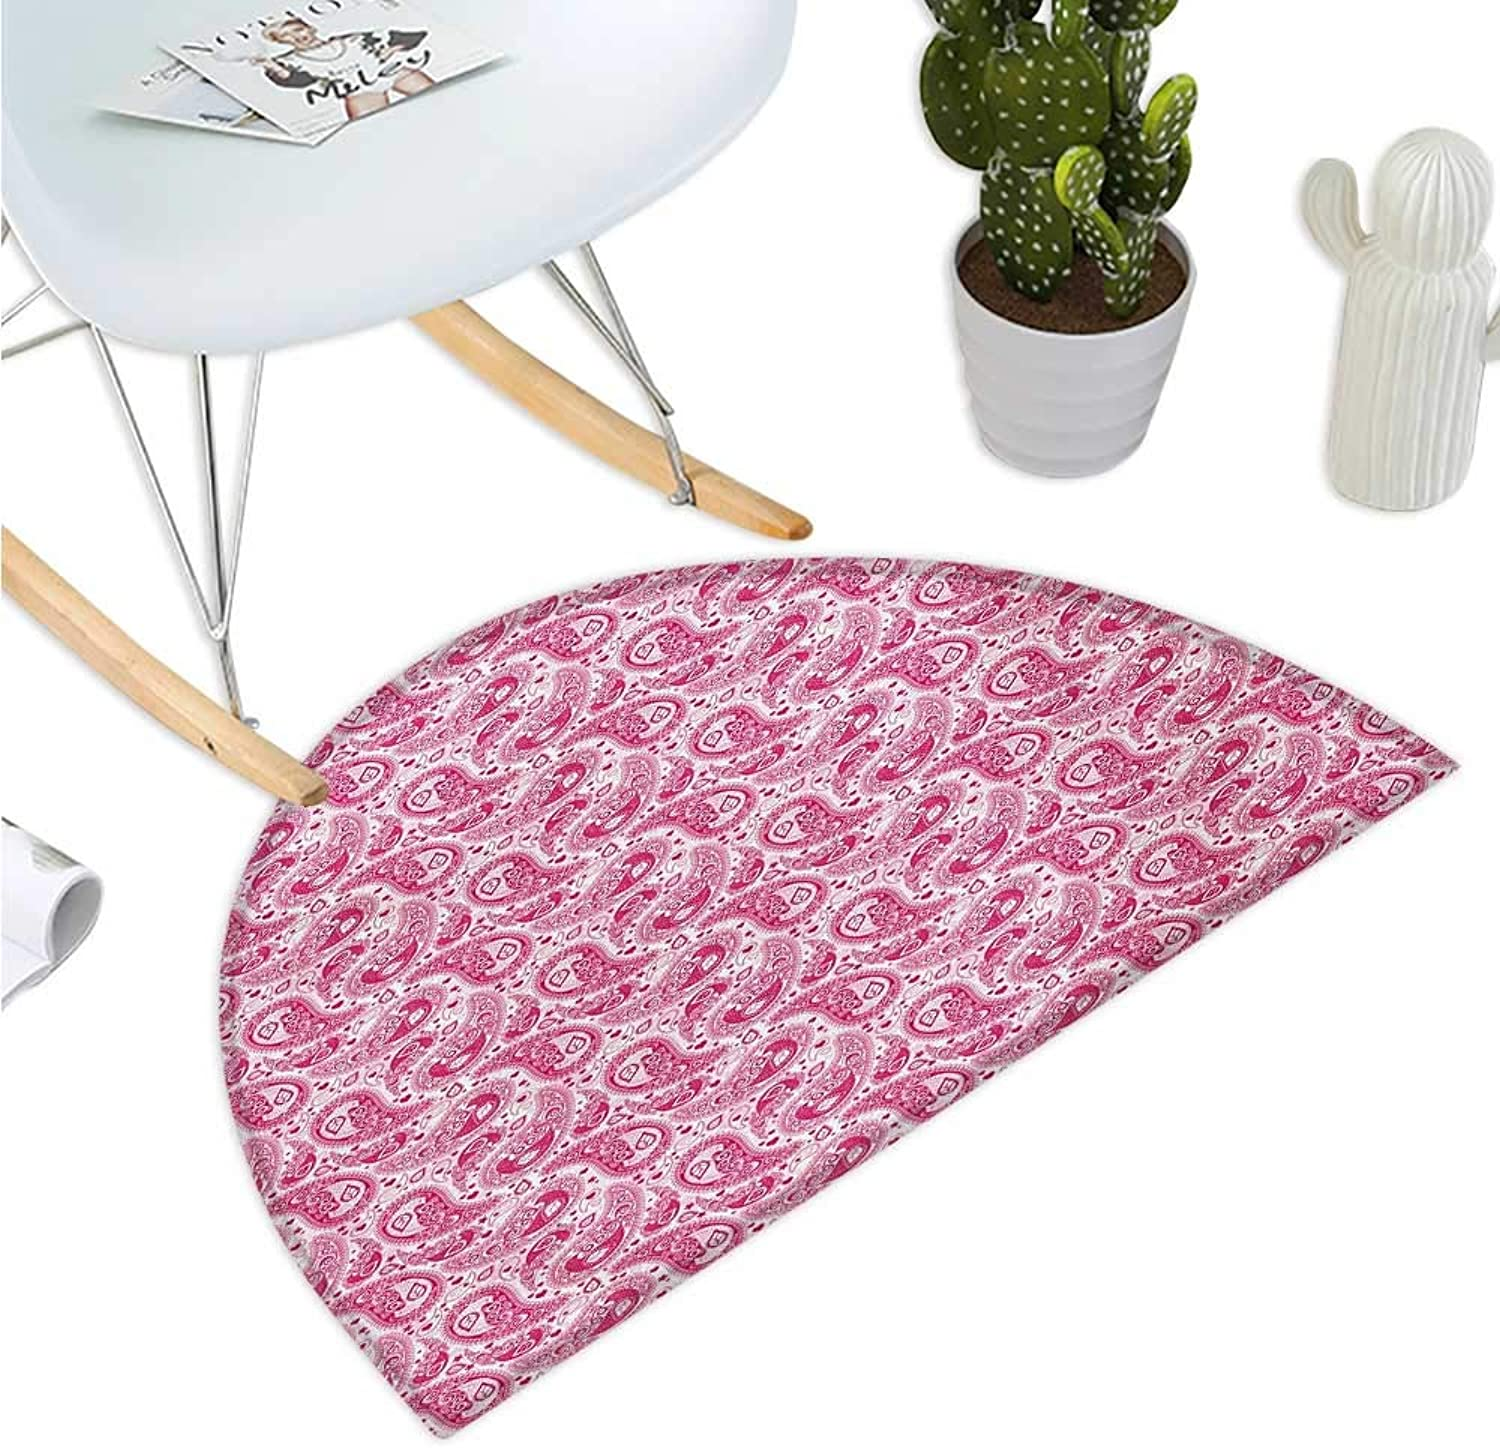 Hippie Semicircular Cushion Abstract and Vintage Leaves Bohemian Oriental Sacred Motif in Pink Shades Entry Door Mat H 39.3  xD 59  Magenta and White